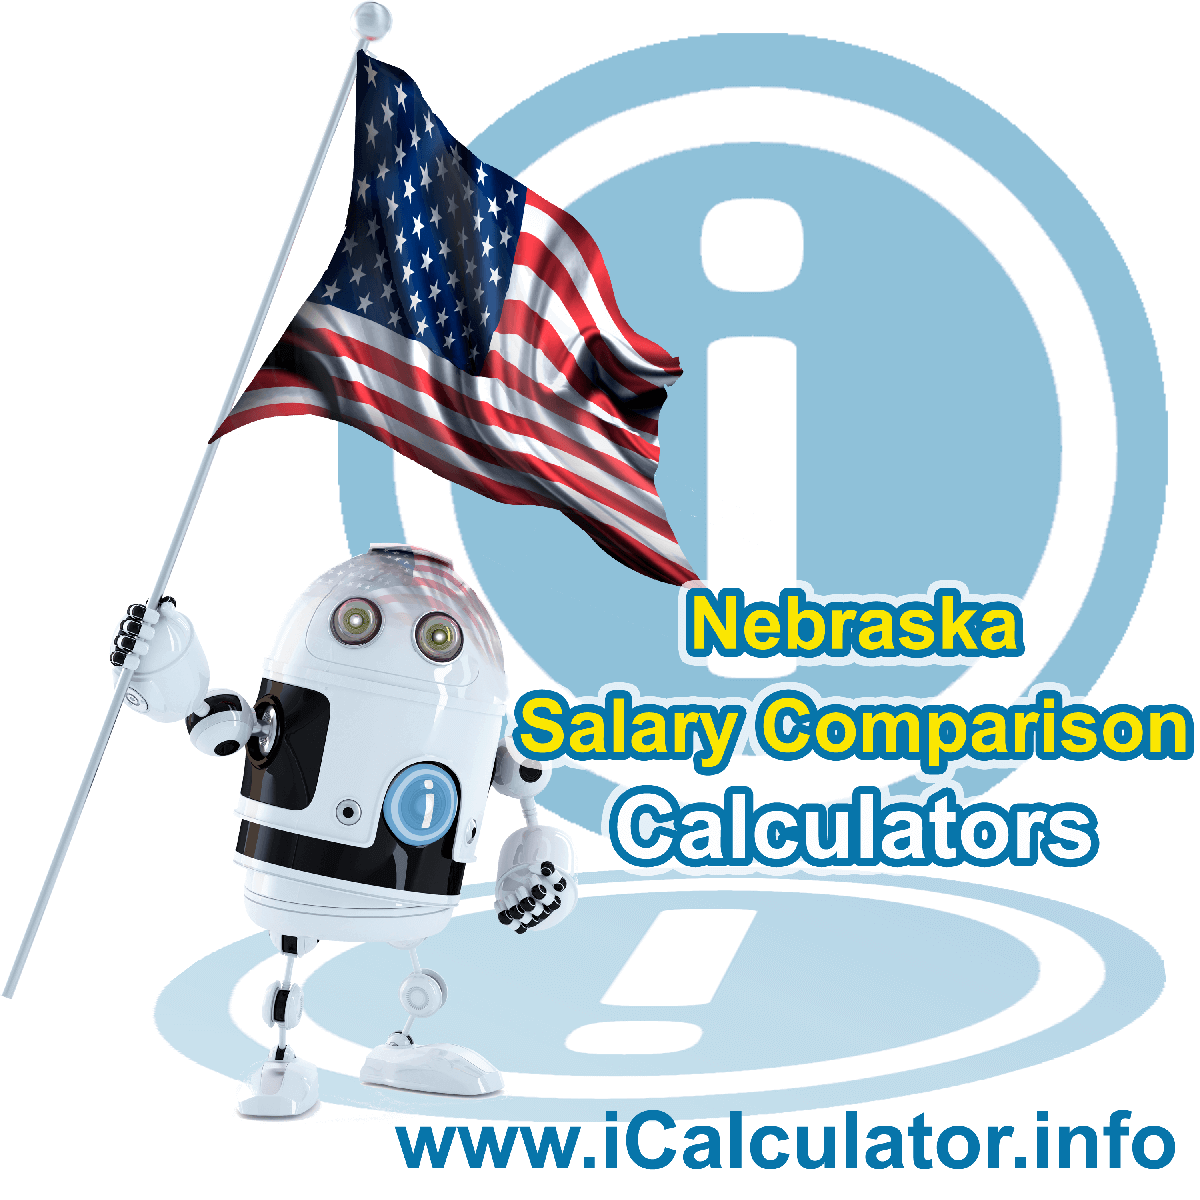 Nebraska Salary Comparison Calculator 2019 | iCalculator | The Nebraska Salary Comparison Calculator allows you to quickly calculate and compare upto 6 salaries in Nebraska or between other states for the 2019 tax year and historical tax years. Its an excellent tool for jobseekers, pay raise comparison and comparison of salaries between different US States